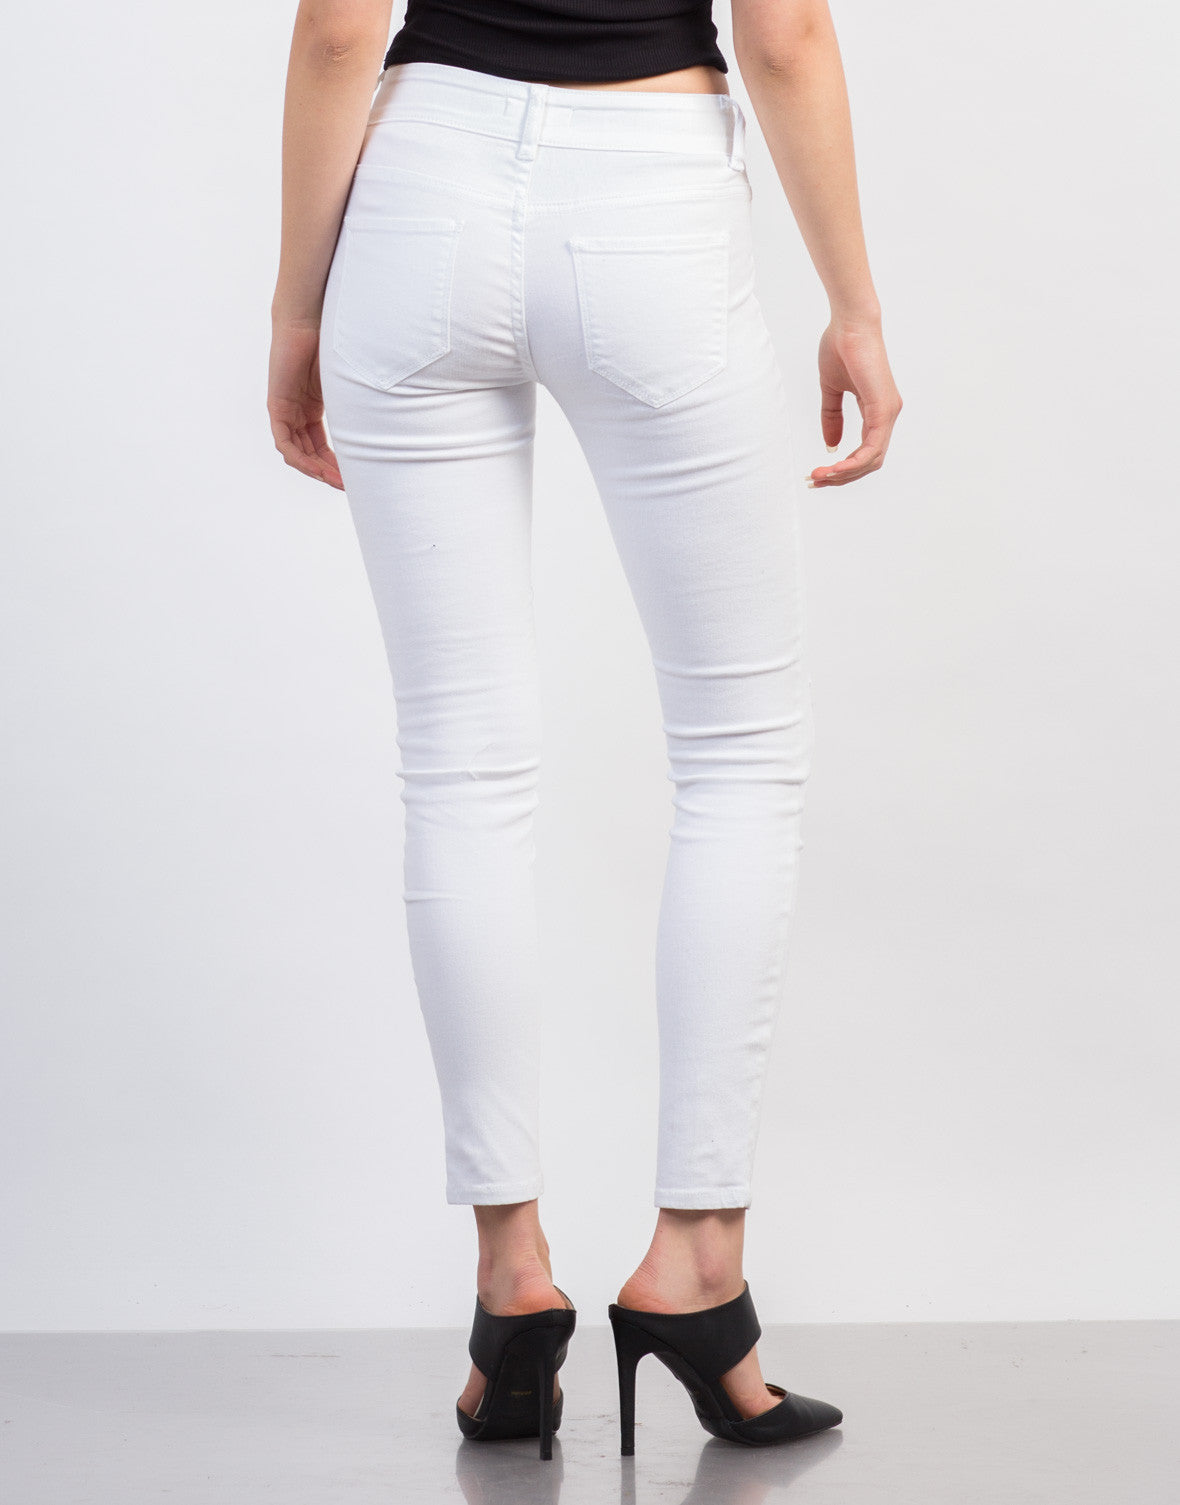 Back View of Slightly Distressed White Skinny Jeans